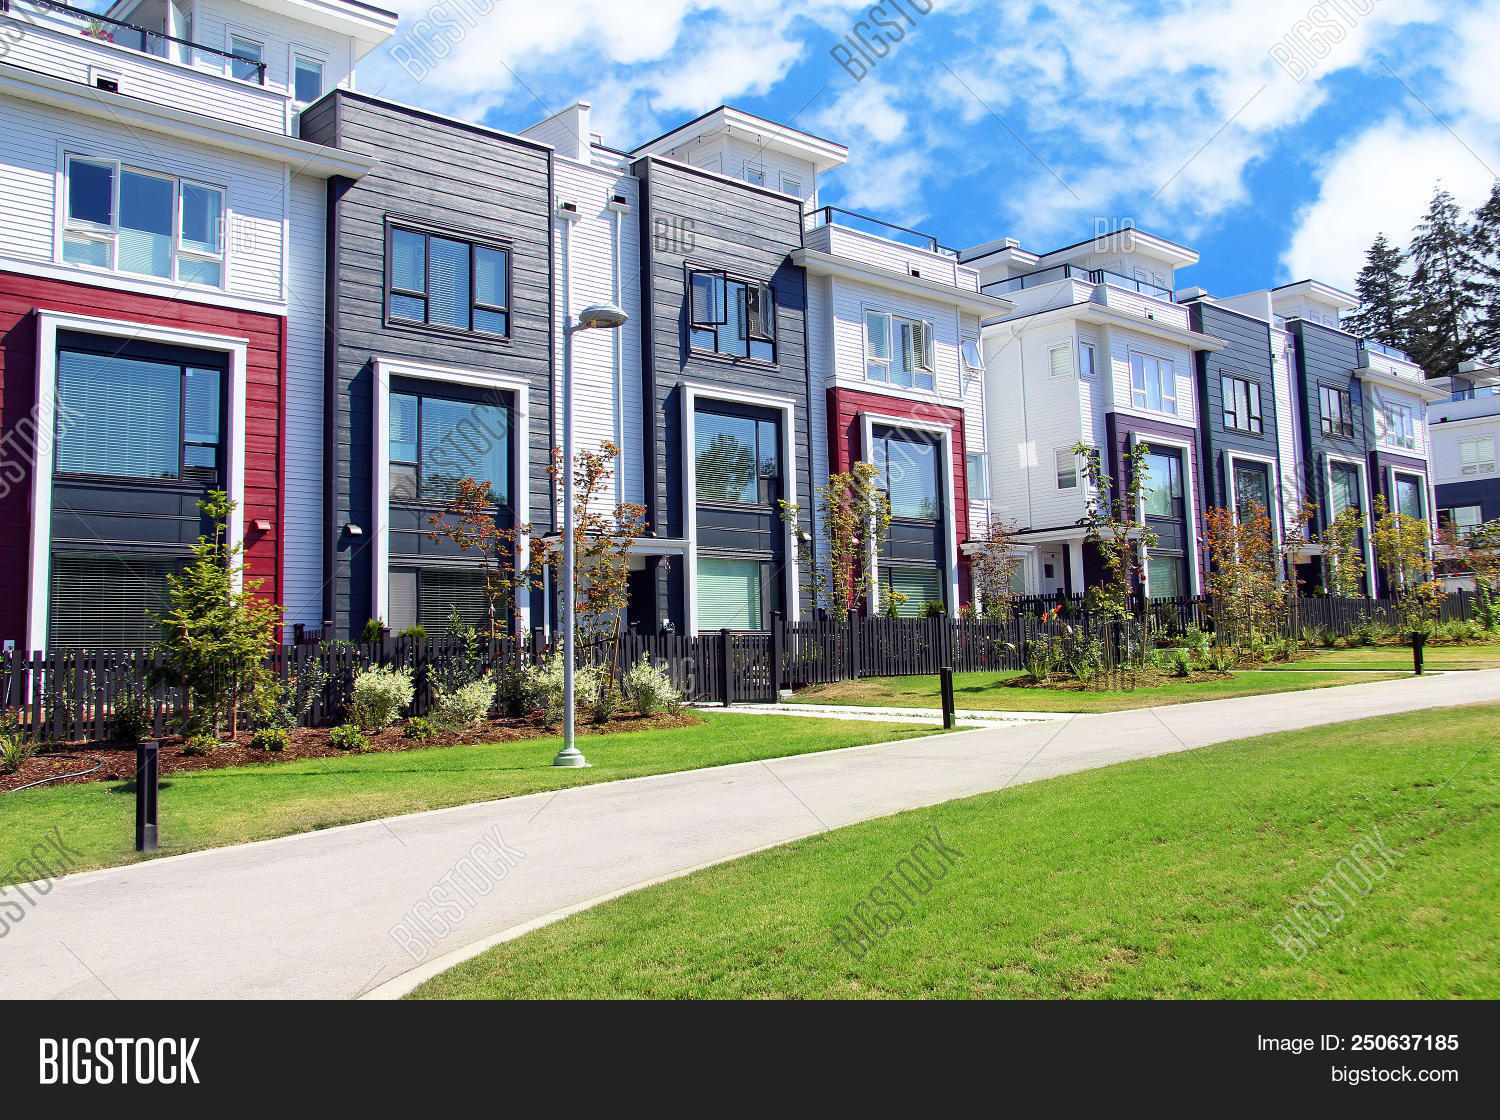 Beautiful new contempory suburban attached townhomes with colorful summer gardens in a Canadian neig